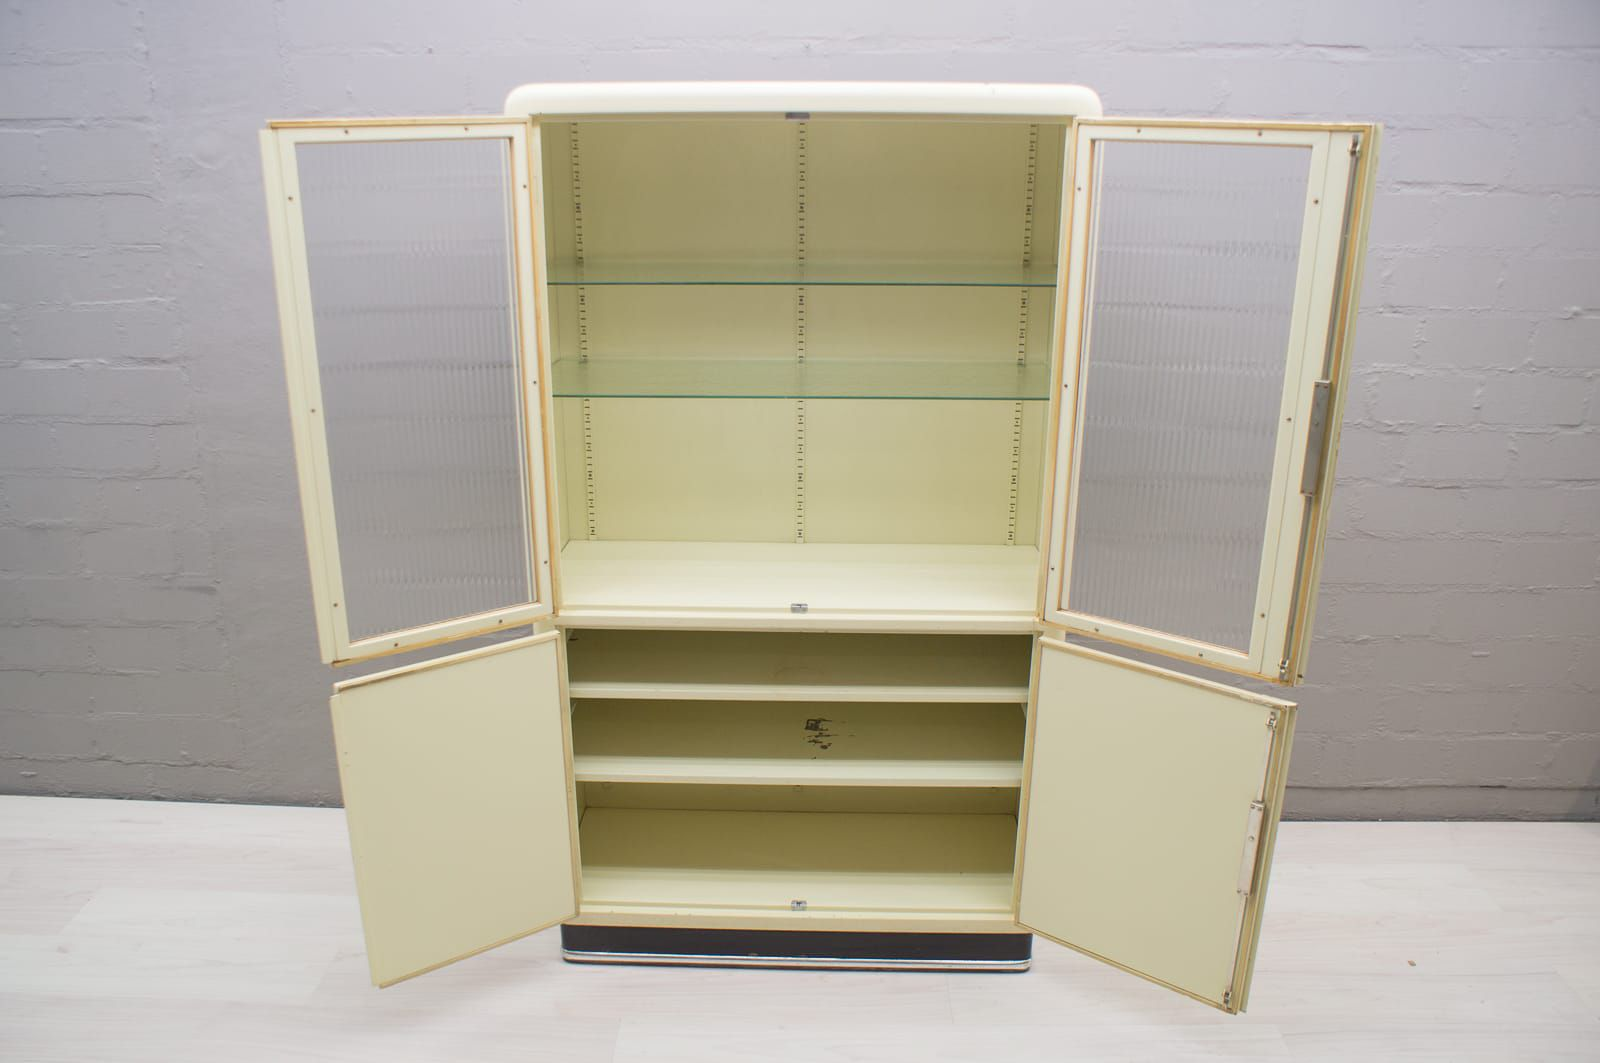 German Metal Medical Cabinet From Baisch, 1950s 3. Previous